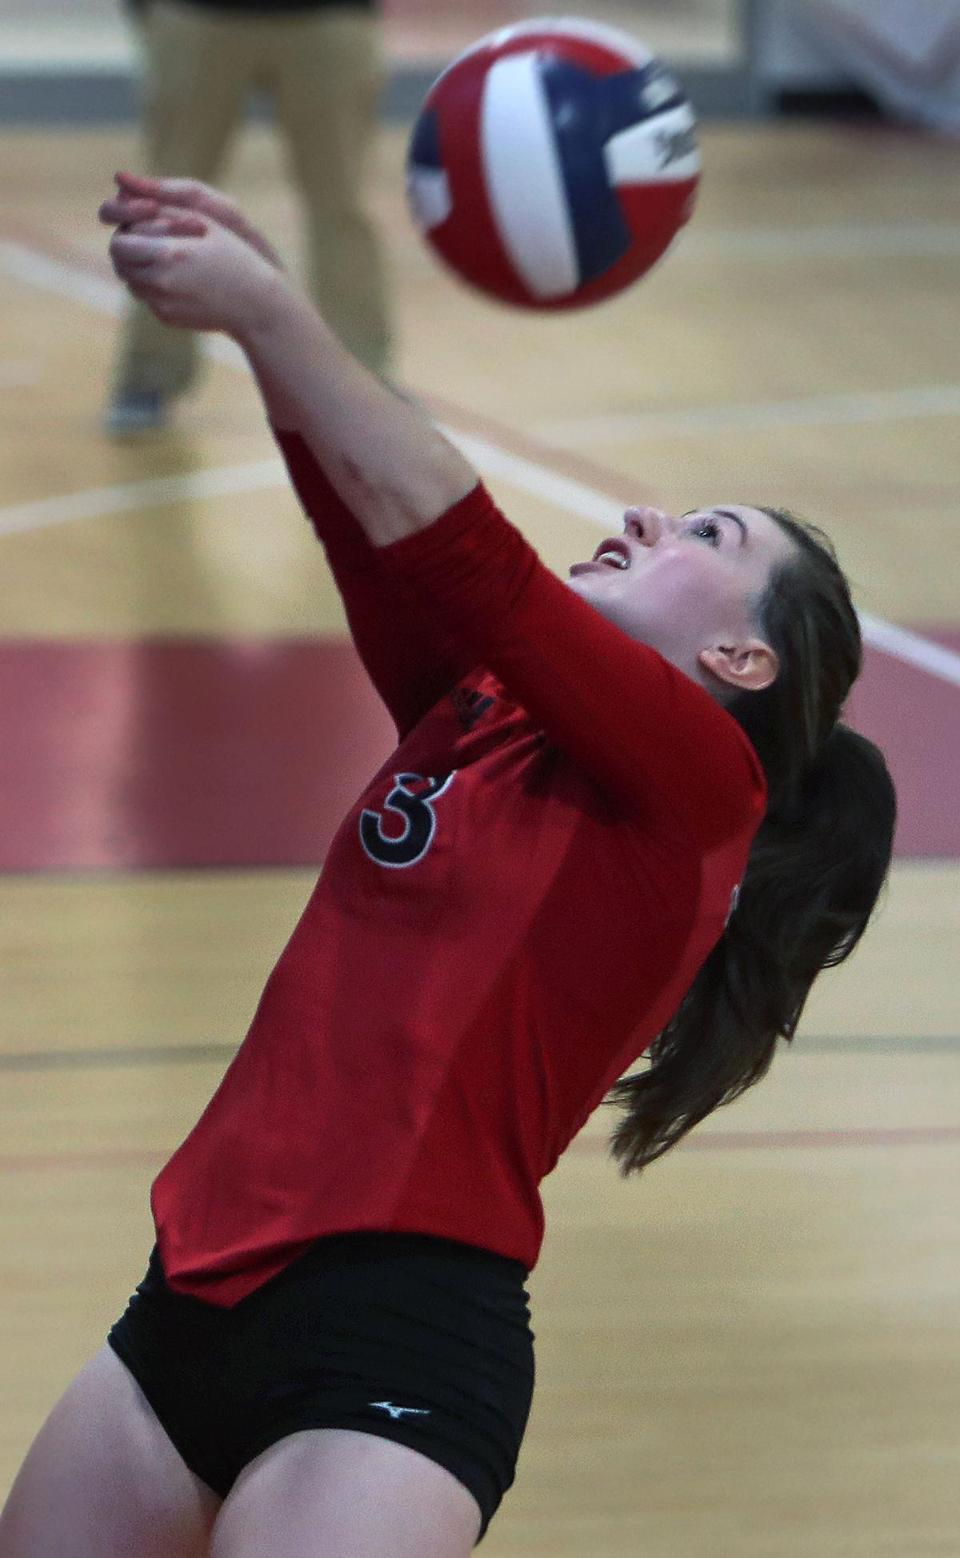 Winchester, MA: 10-11-17: Winchester's Lauren Salvatore is pictured in action. Melrose visited Winchester in a high school girl's volleyball match. (Globe Staff Photo/Jim Davis)